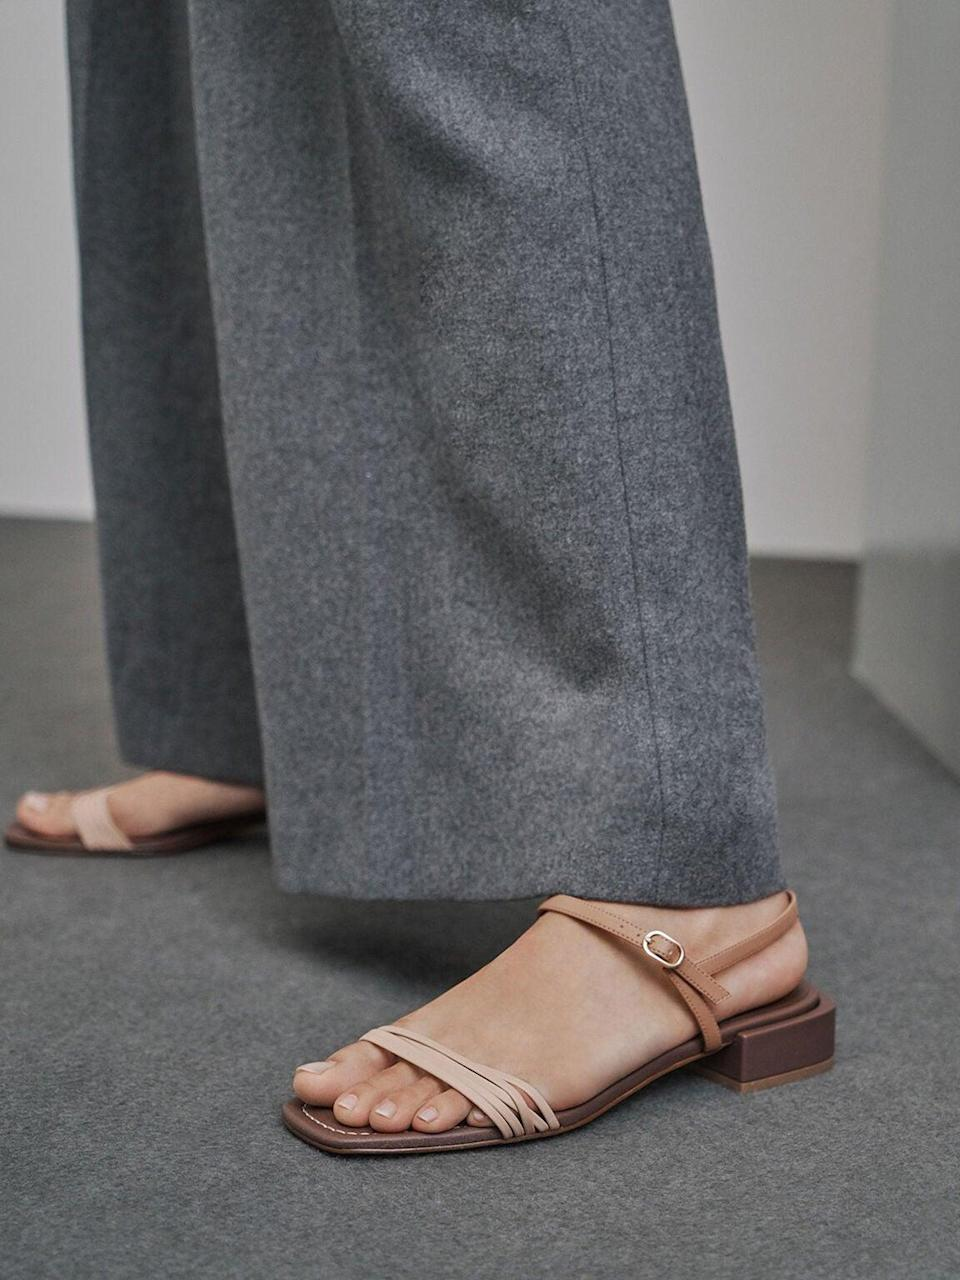 """<br><br><strong>Charles & Keith</strong> Open Square Toe Heeled Sandals, $, available at <a href=""""https://go.skimresources.com/?id=30283X879131&url=https%3A%2F%2Fwww.charleskeith.com%2Fus%2Fsale%2FCK1-70900243_DK.BRW.html"""" rel=""""nofollow noopener"""" target=""""_blank"""" data-ylk=""""slk:Charles & Keith"""" class=""""link rapid-noclick-resp"""">Charles & Keith</a>"""